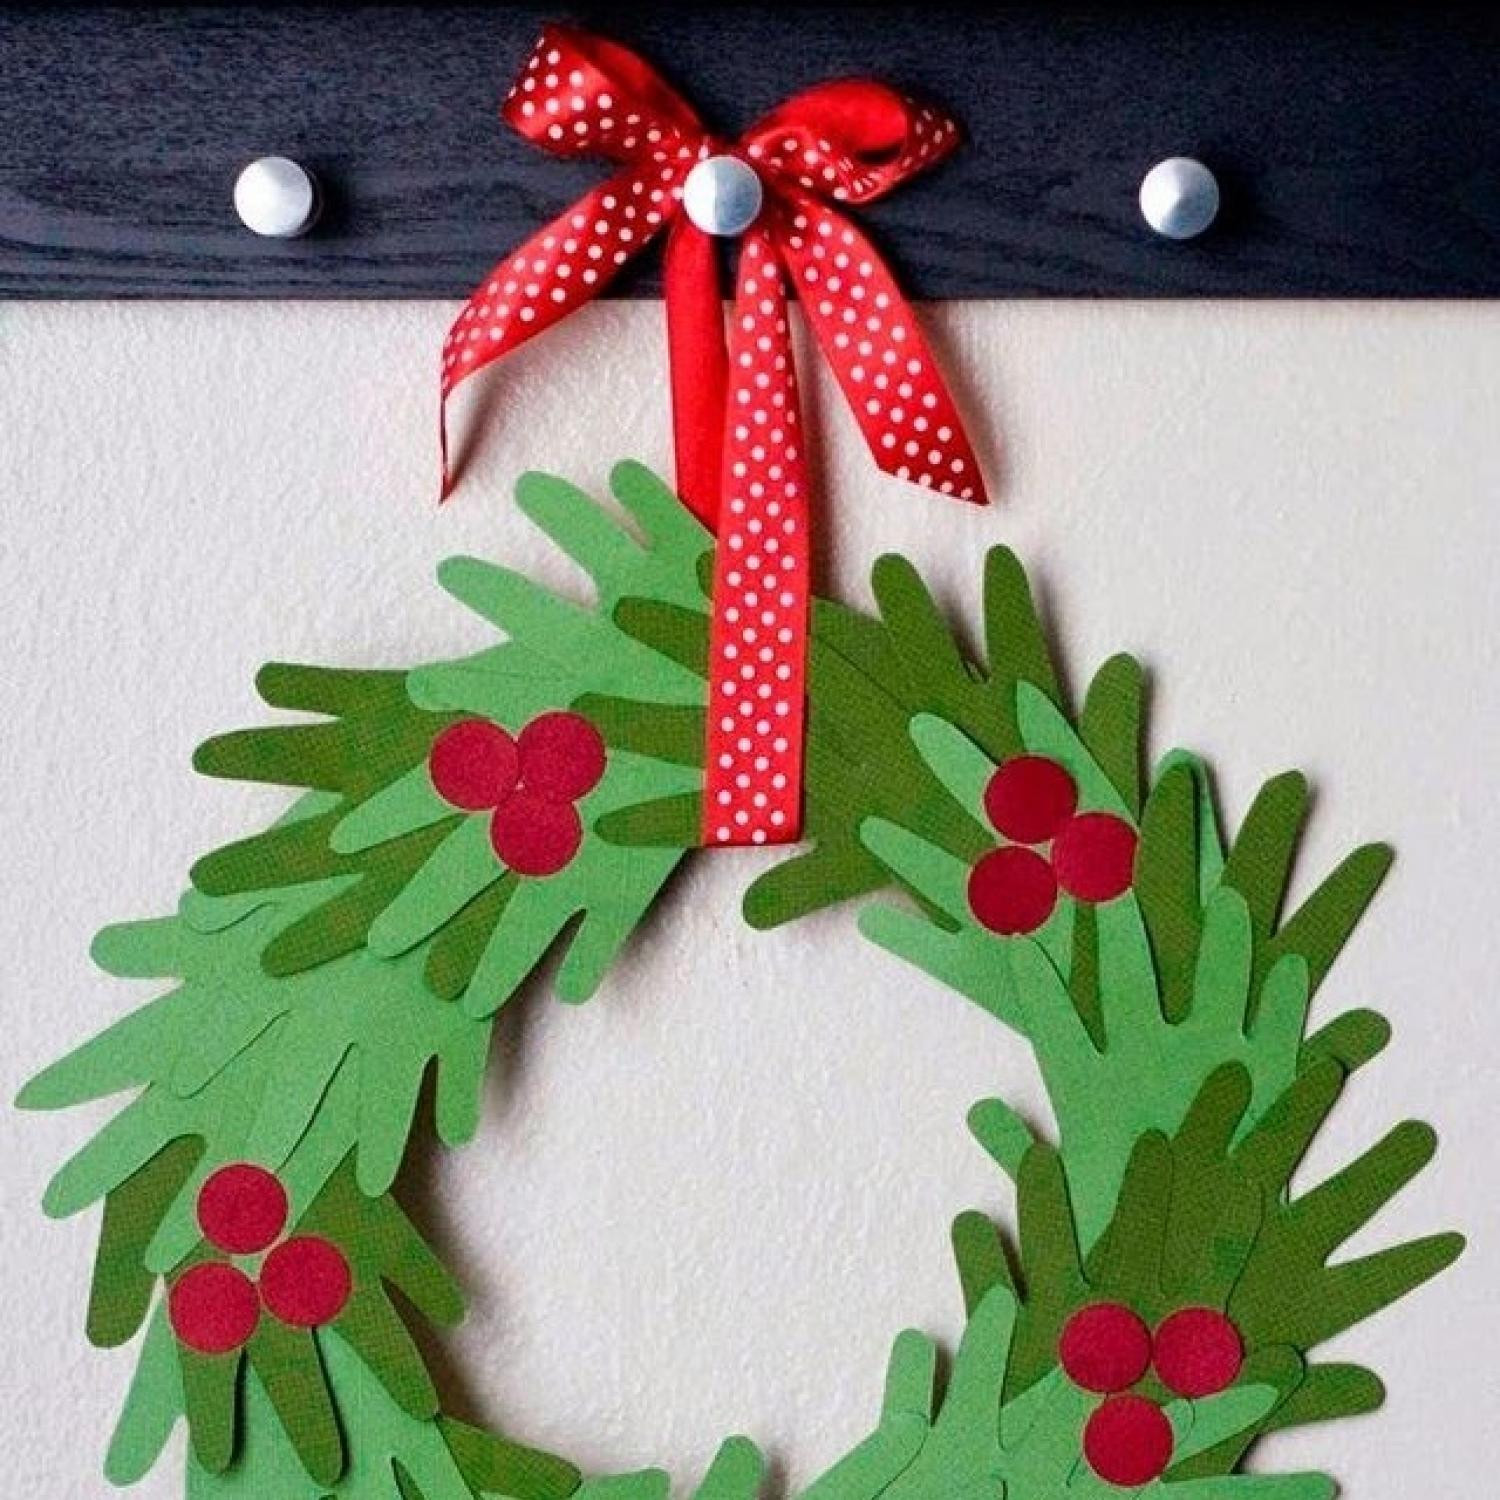 Christmas Painting Ideas For Kids  10 Handprint Christmas Crafts for Kids